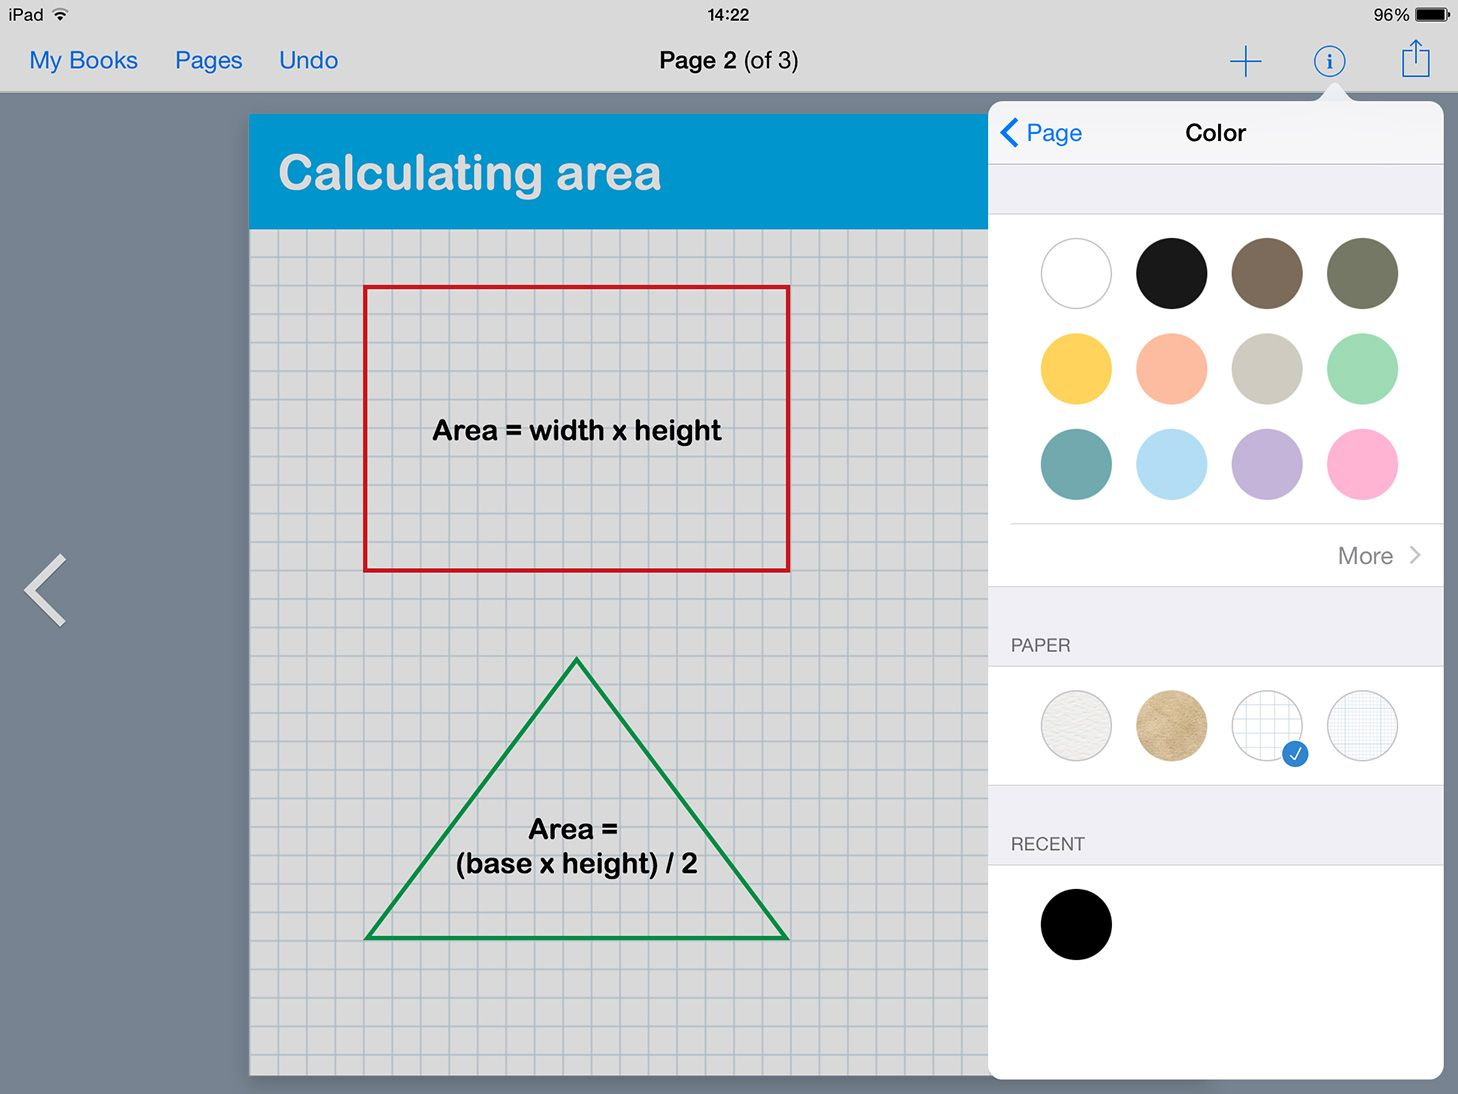 new graph paper backgrounds and shapes in book creator app ibooks